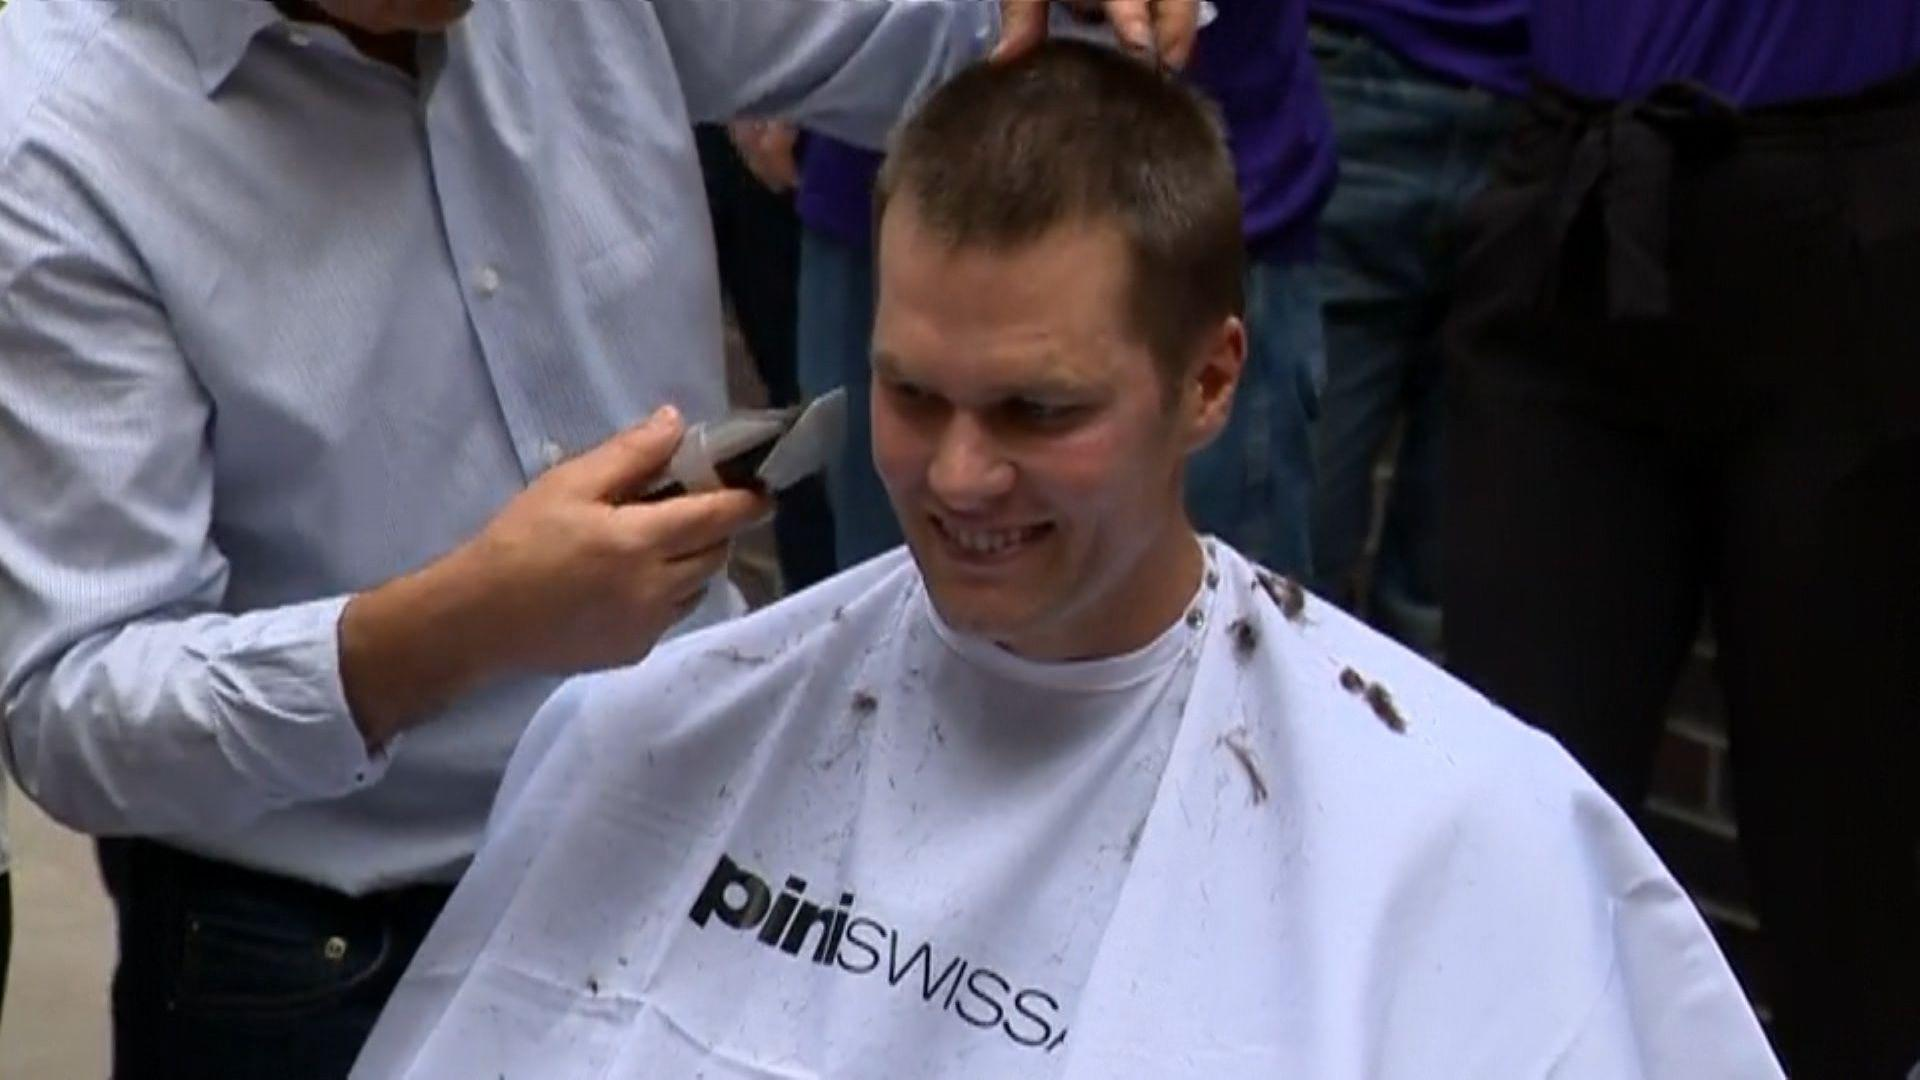 Patriots Tom Brady Gets A Haircut For Cancer Awareness